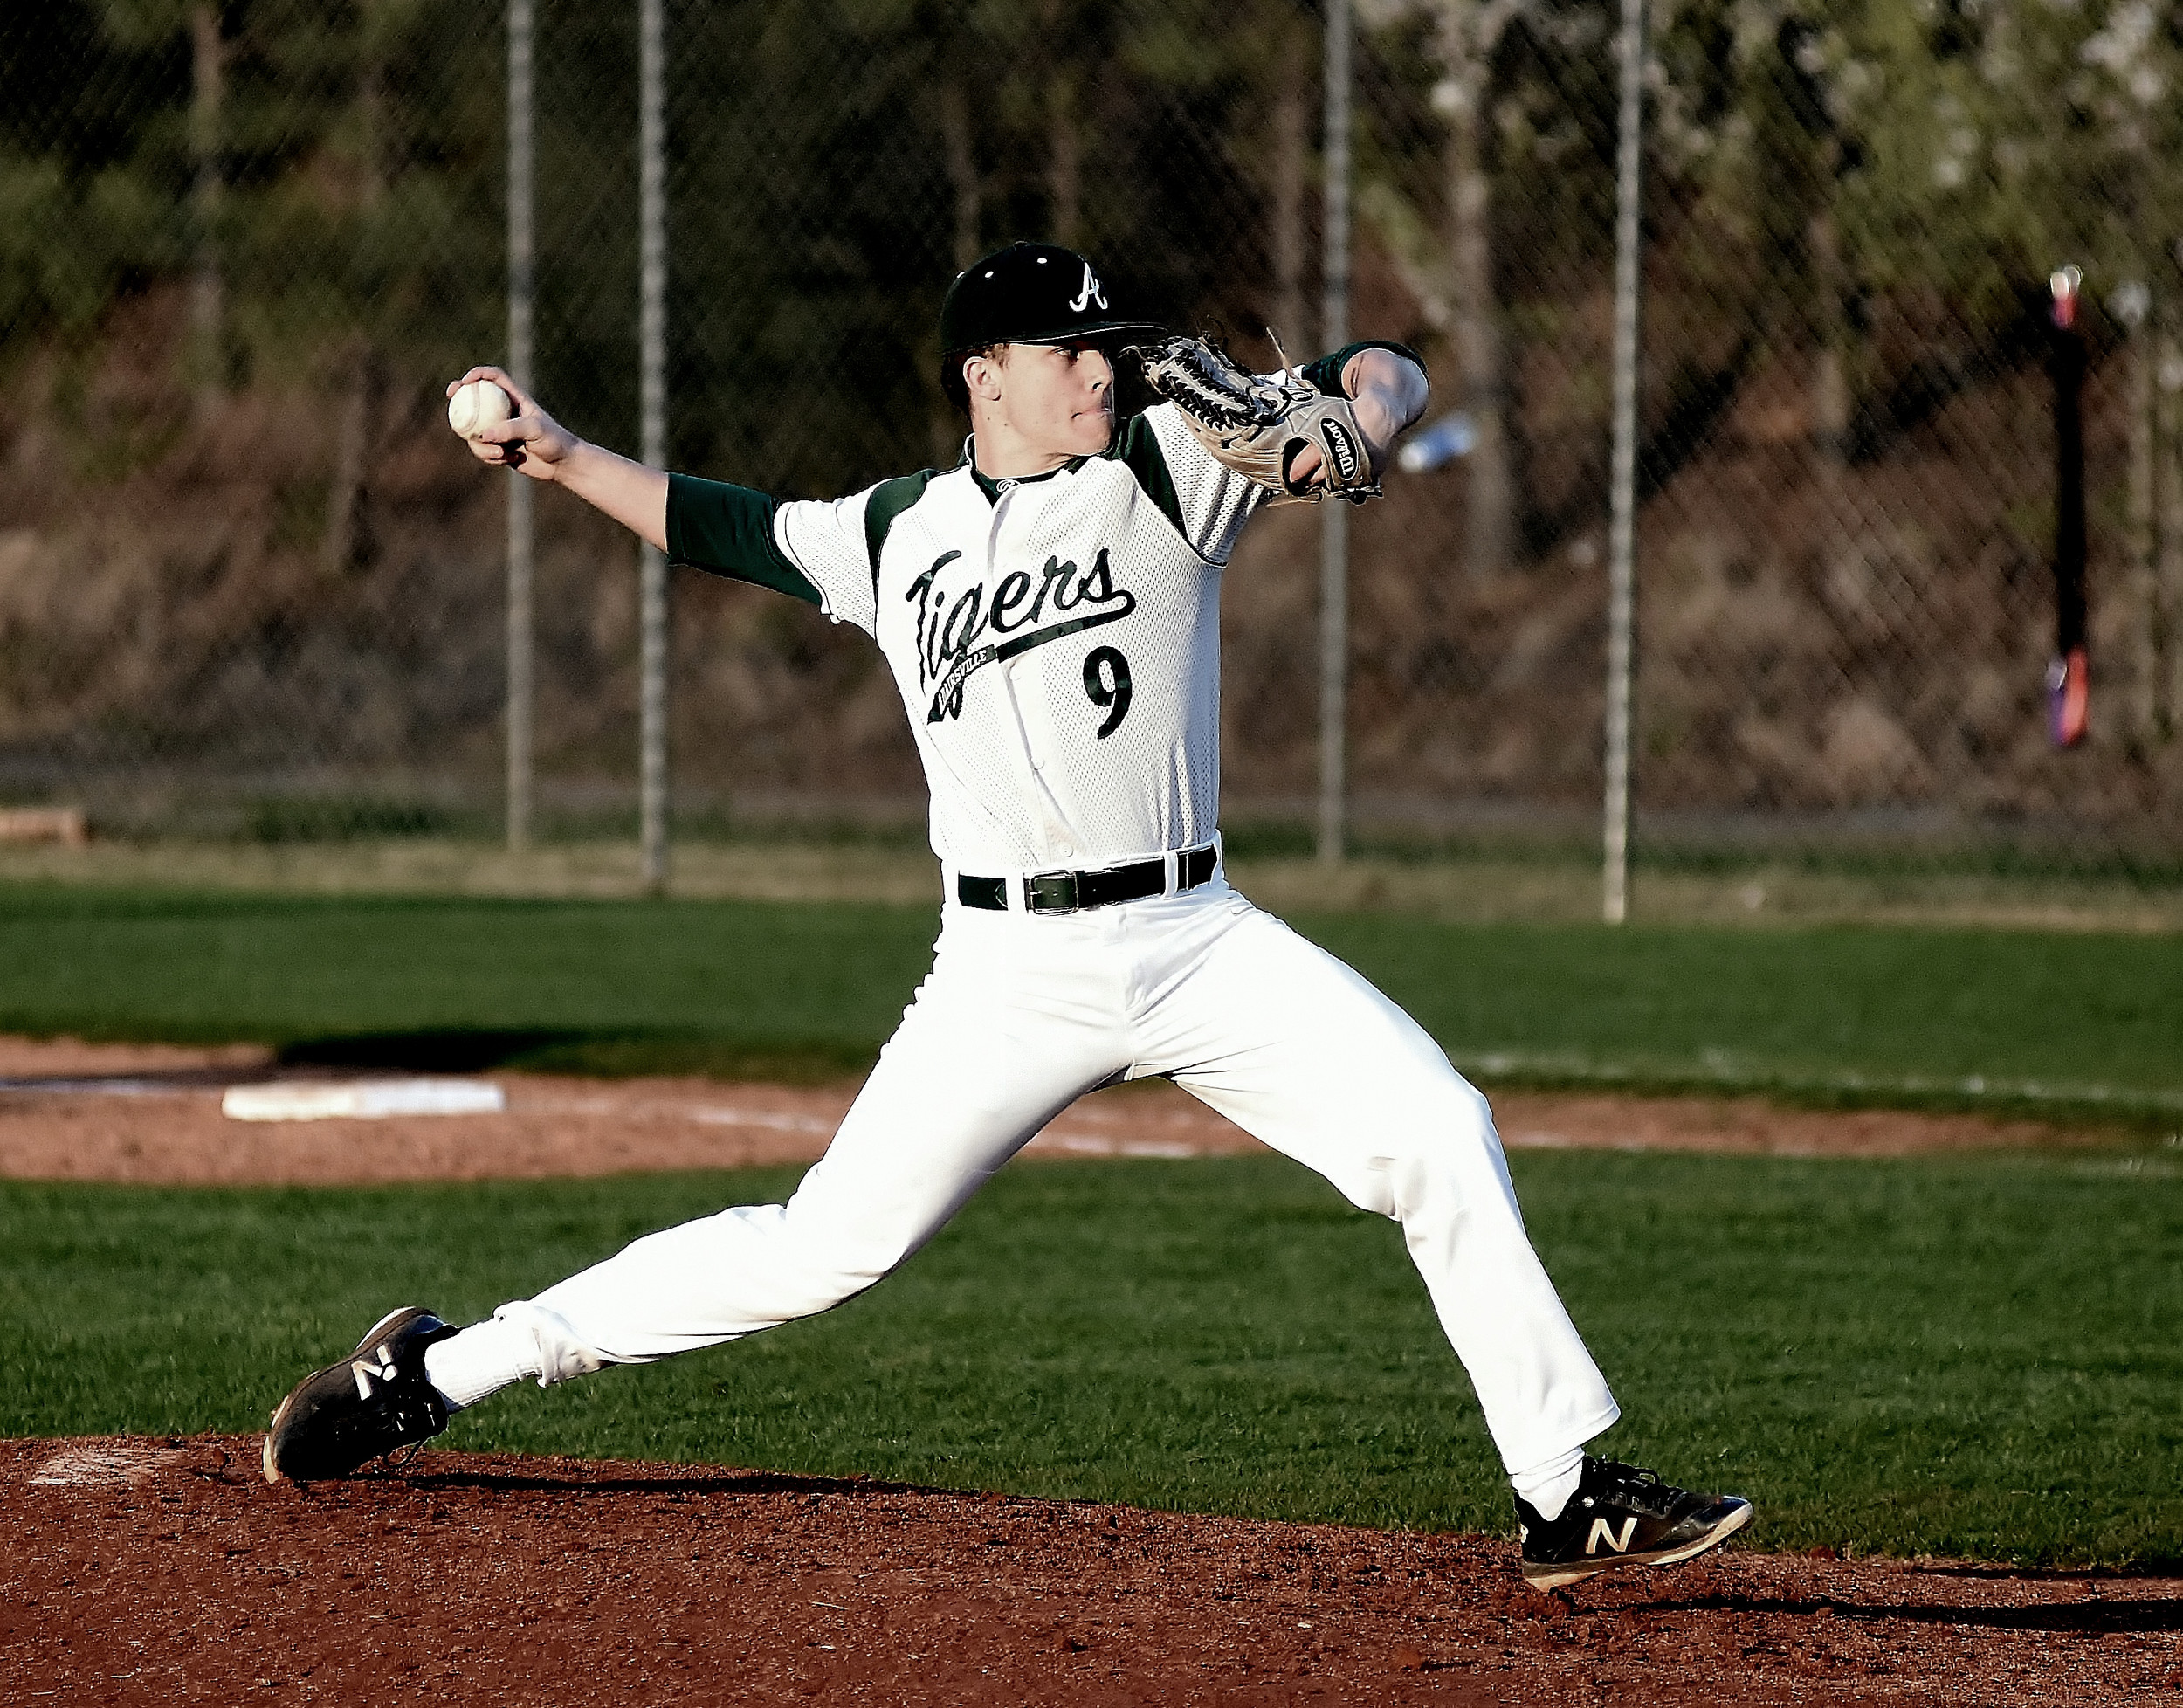 Adairsville senior Kyler Pelfrey earned DTN Pitcher of the Year following his 9-1 campaign. His only loss came in the state playoffs and couldn't dampen a resume bolstered by a 0.89 ERA and 0.71 WHIP.